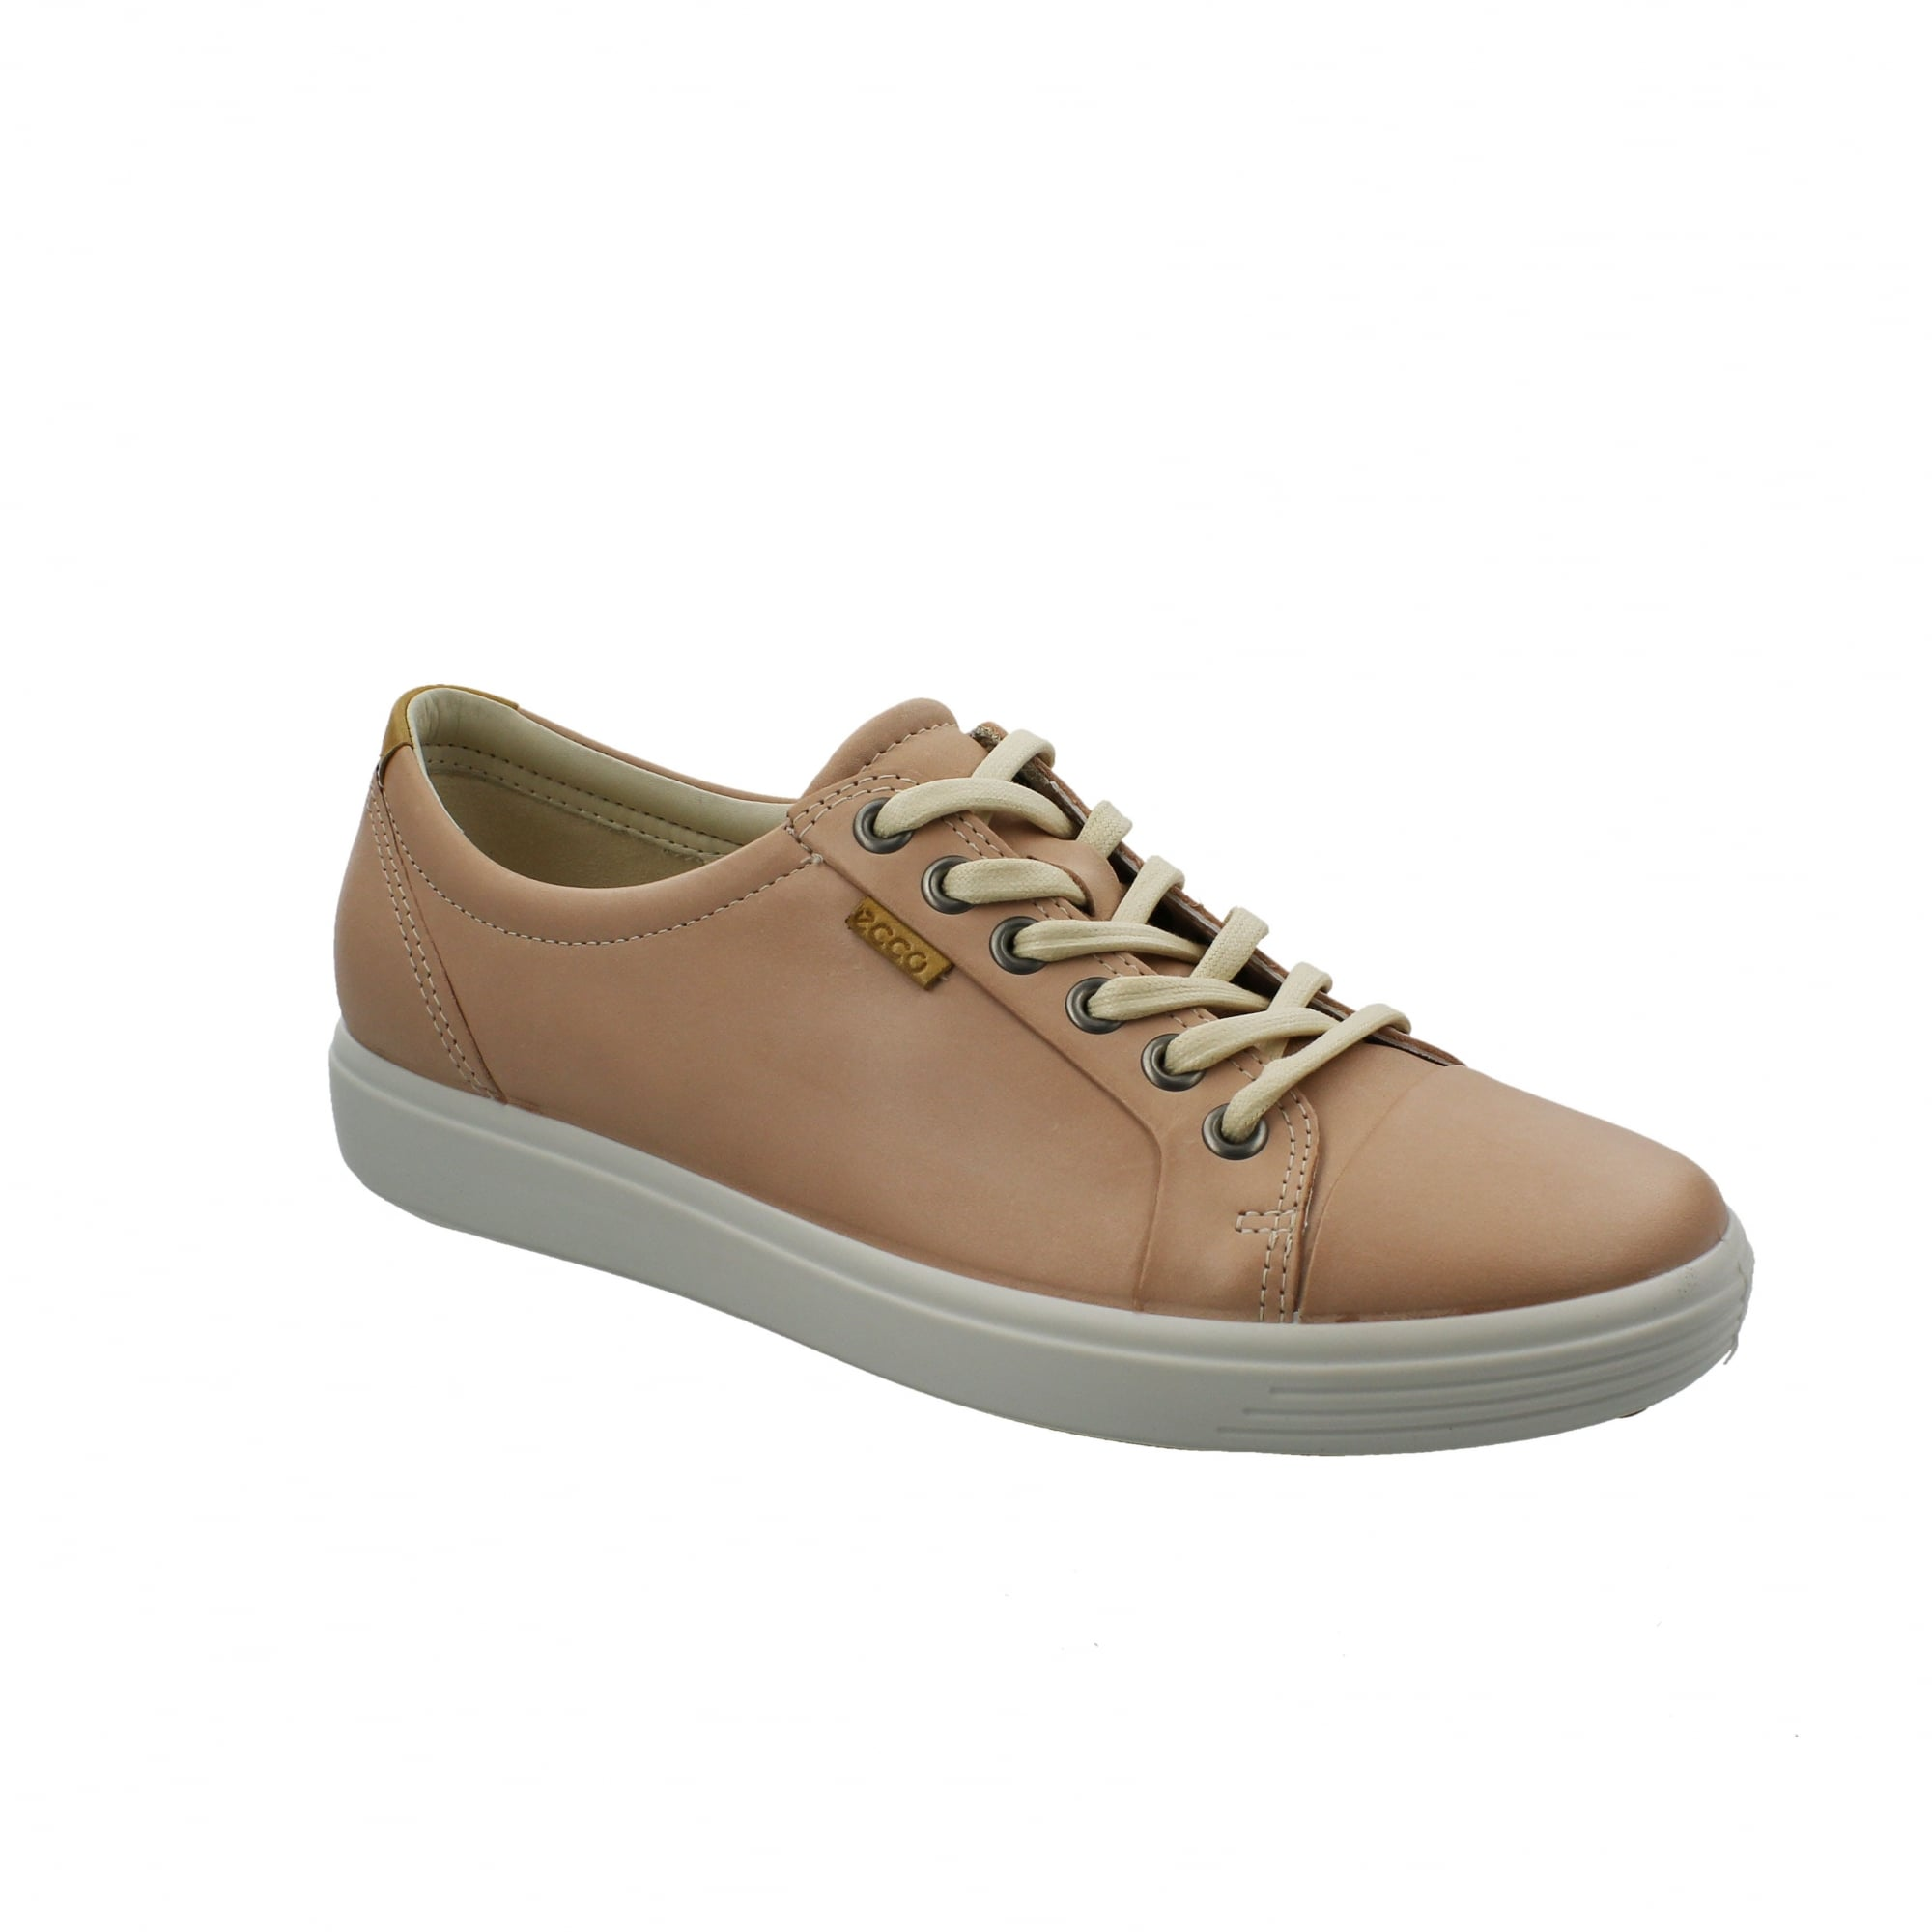 06d5ba022d4c7 Ecco Soft 7   430003-02118 - Womens from Rogerson Shoes UK